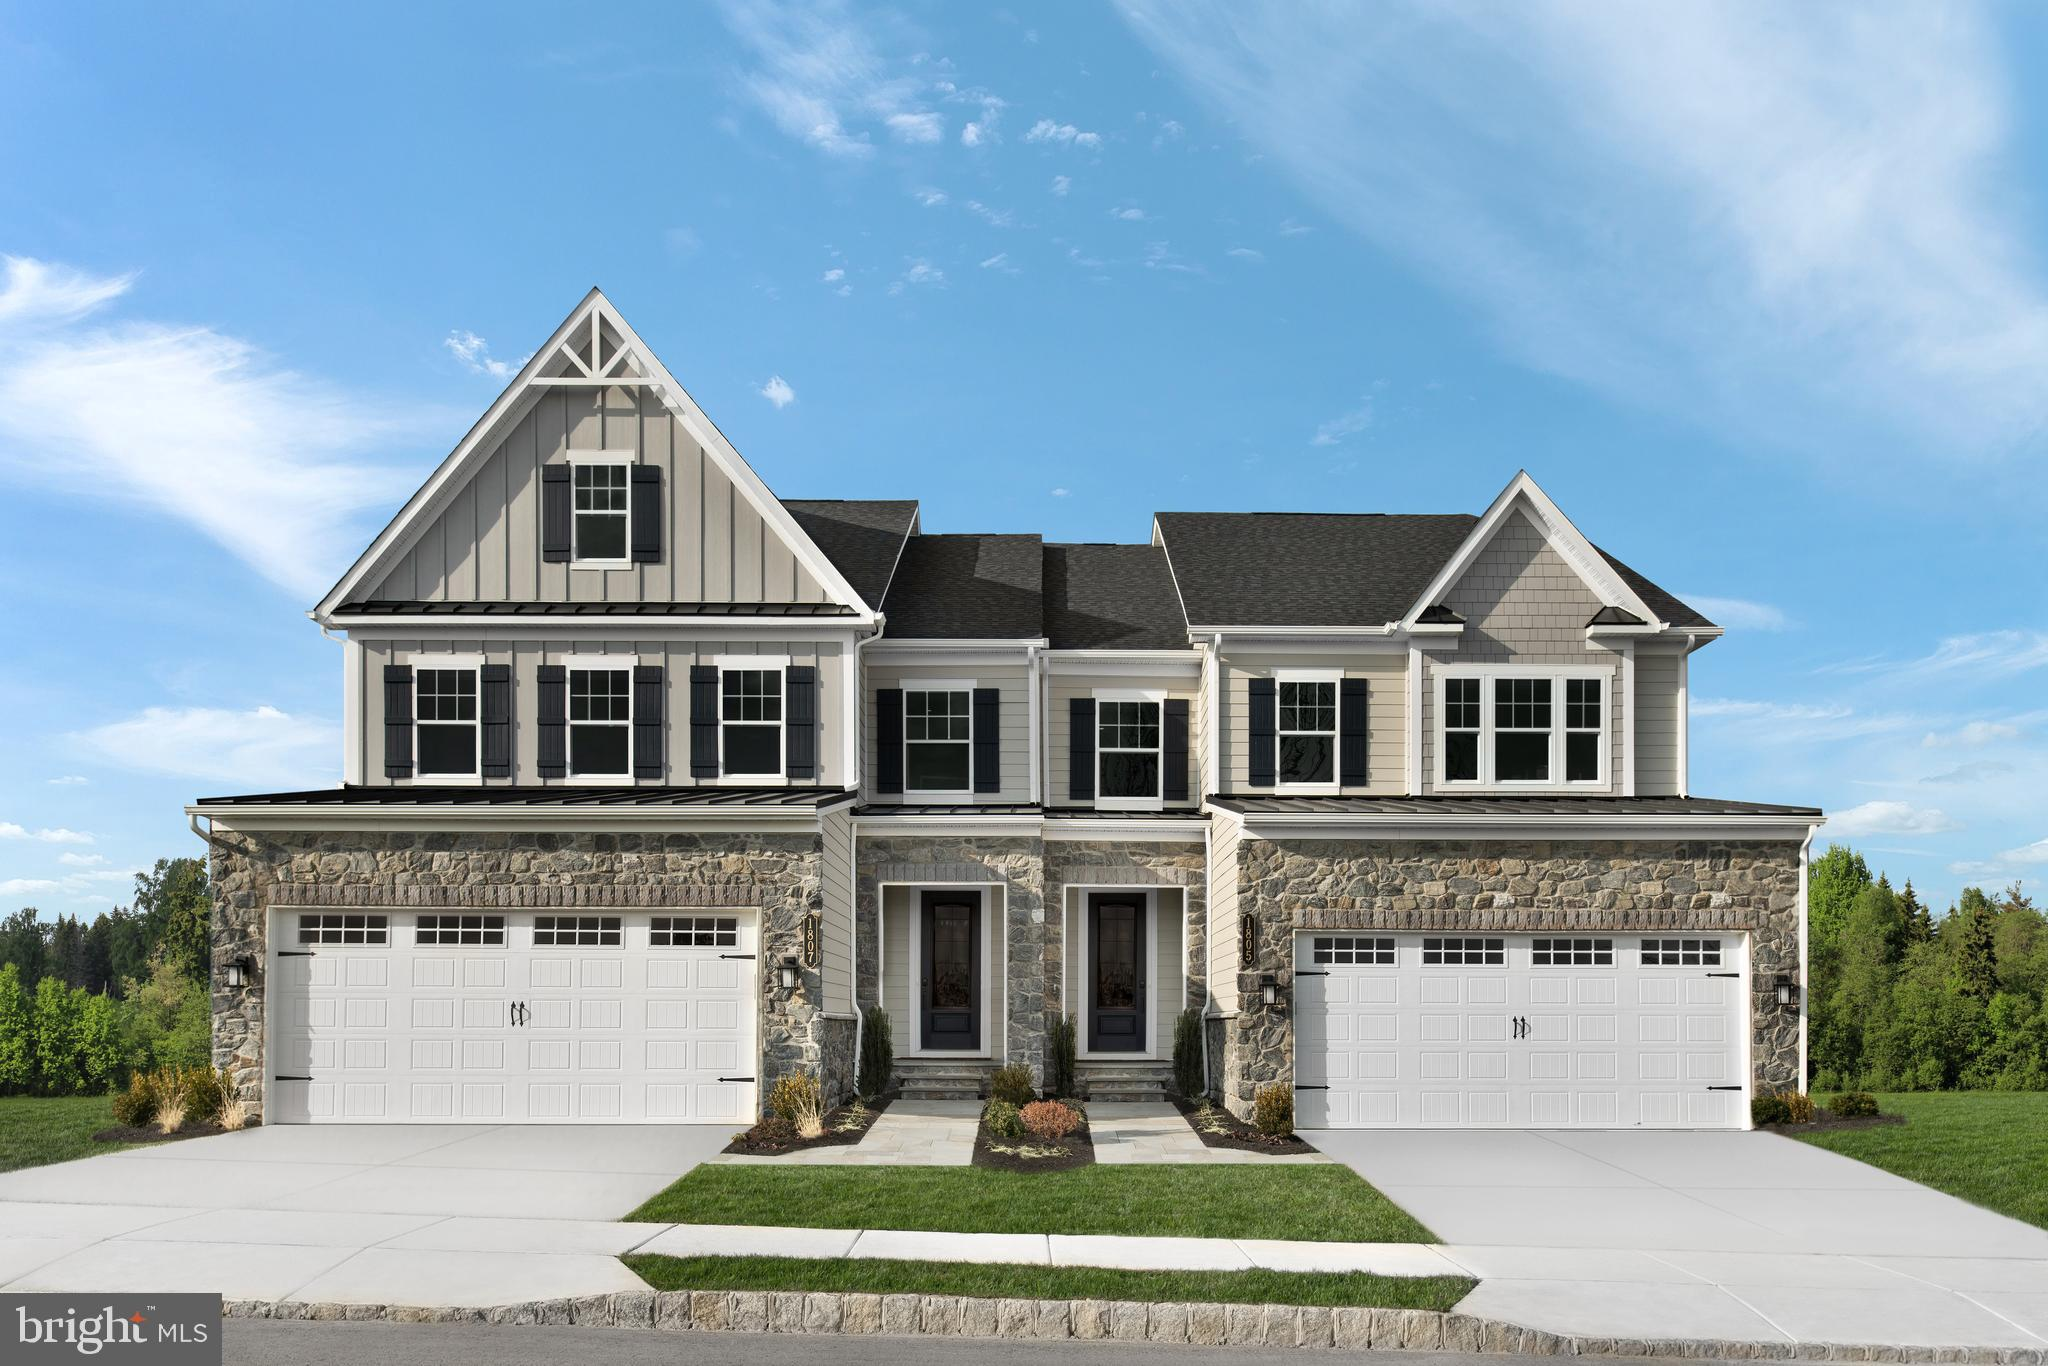 Welcome to the Haverford at Greystone by NVHomes , a community that more than 90 people have already decided to call home! Luxury twin Homes in a spectacular estate setting near Rt. 100, 202, the 322 bypass, and West Chester Borough. The Haverford townhome offers luxury on every level. Just off the 2-car garage and family entry, versatile flex space can be used as an office, study or a 1st-floor bedroom with full bath. The gourmet kitchen and dining area with large island overlooks a great room, perfect for entertaining. Upstairs, sensational loft space leads to 2 bedrooms and a full bath, as well as your luxurious owner s suite. In here, dual walk-in closets and double vanity bath and seated shower provide incomparable comfort. Finish the expansive basement for more living space or a guest suite. The Haverford at Greystone has it all. Call to schedule your appointment today.  Other floorplans and homesites are available. Photos are representative. NVHomes is taking precautionary measures  to protect our valued customers and employees. Our models are open by by appointment.